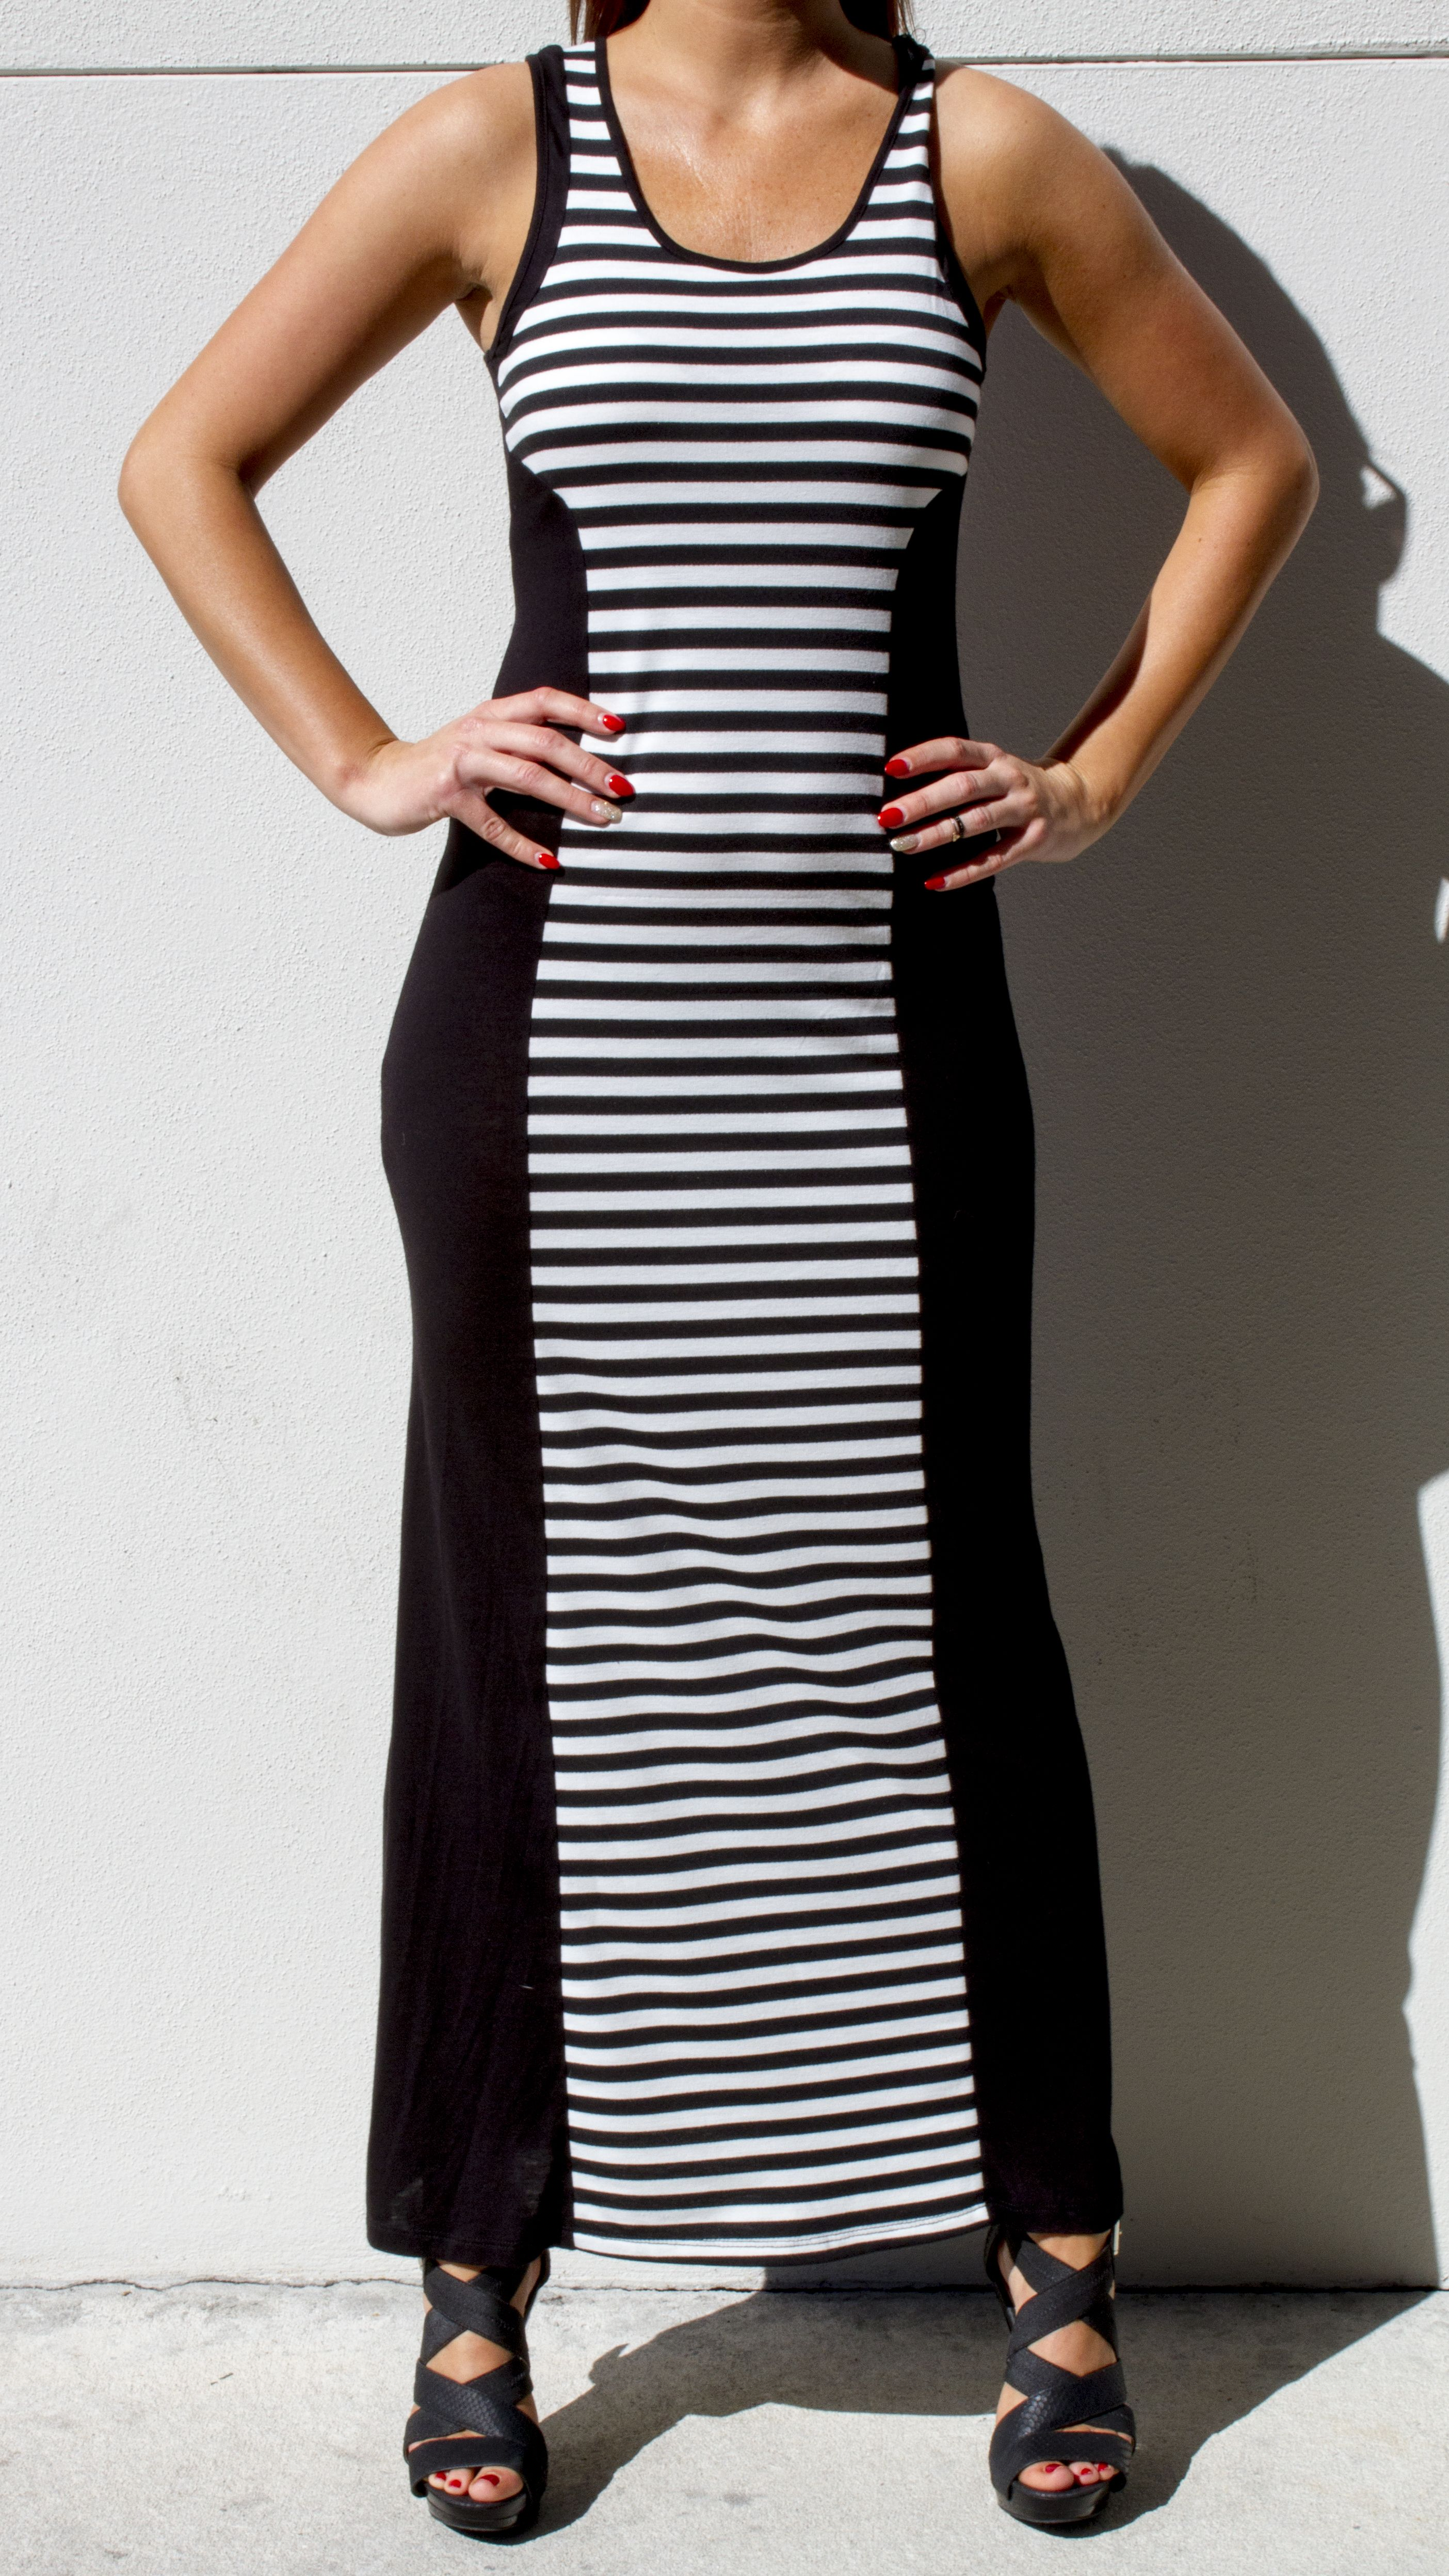 Soft Stretchy And Fitted Stripped Maxi Dress With Color Block That Outlines Your Body This Gem Is Available At Www Maxi Dress Stripped Maxi Dresses Fashion [ 4992 x 2808 Pixel ]